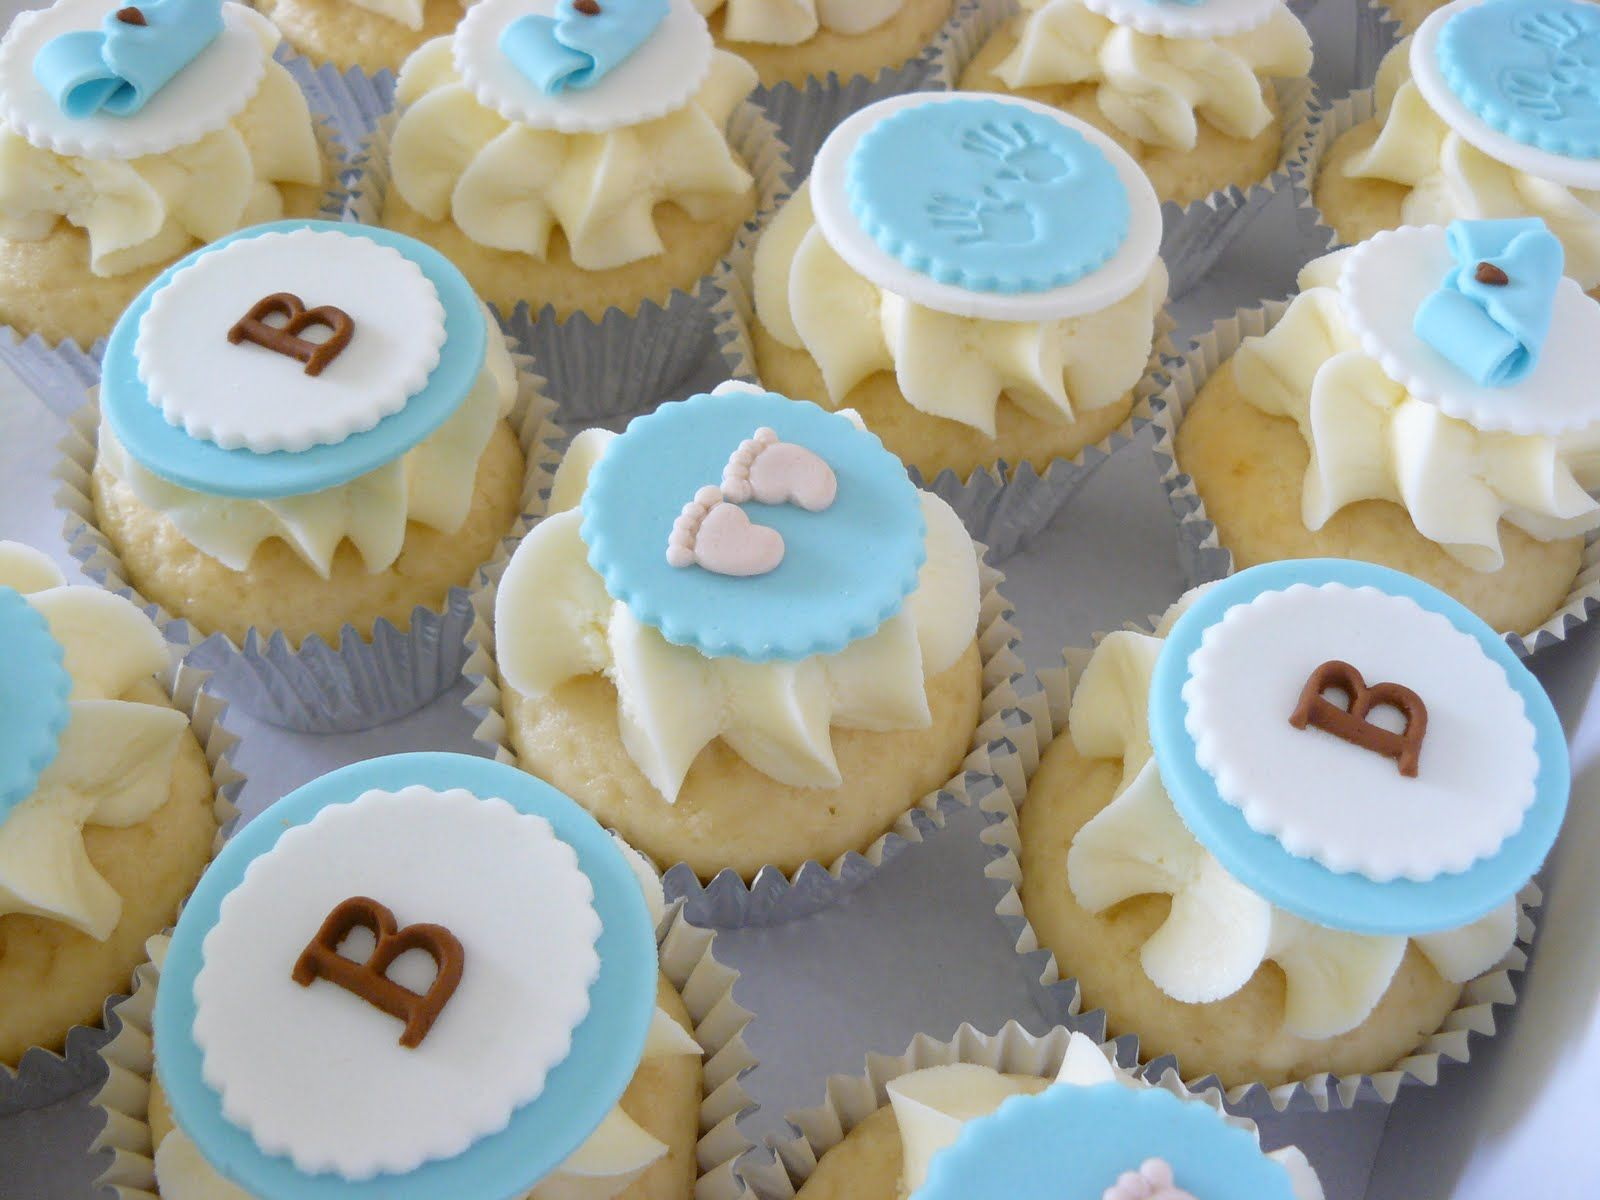 Baby Shower For A Baby Boy Baby Shower Cakes Shower Cakes